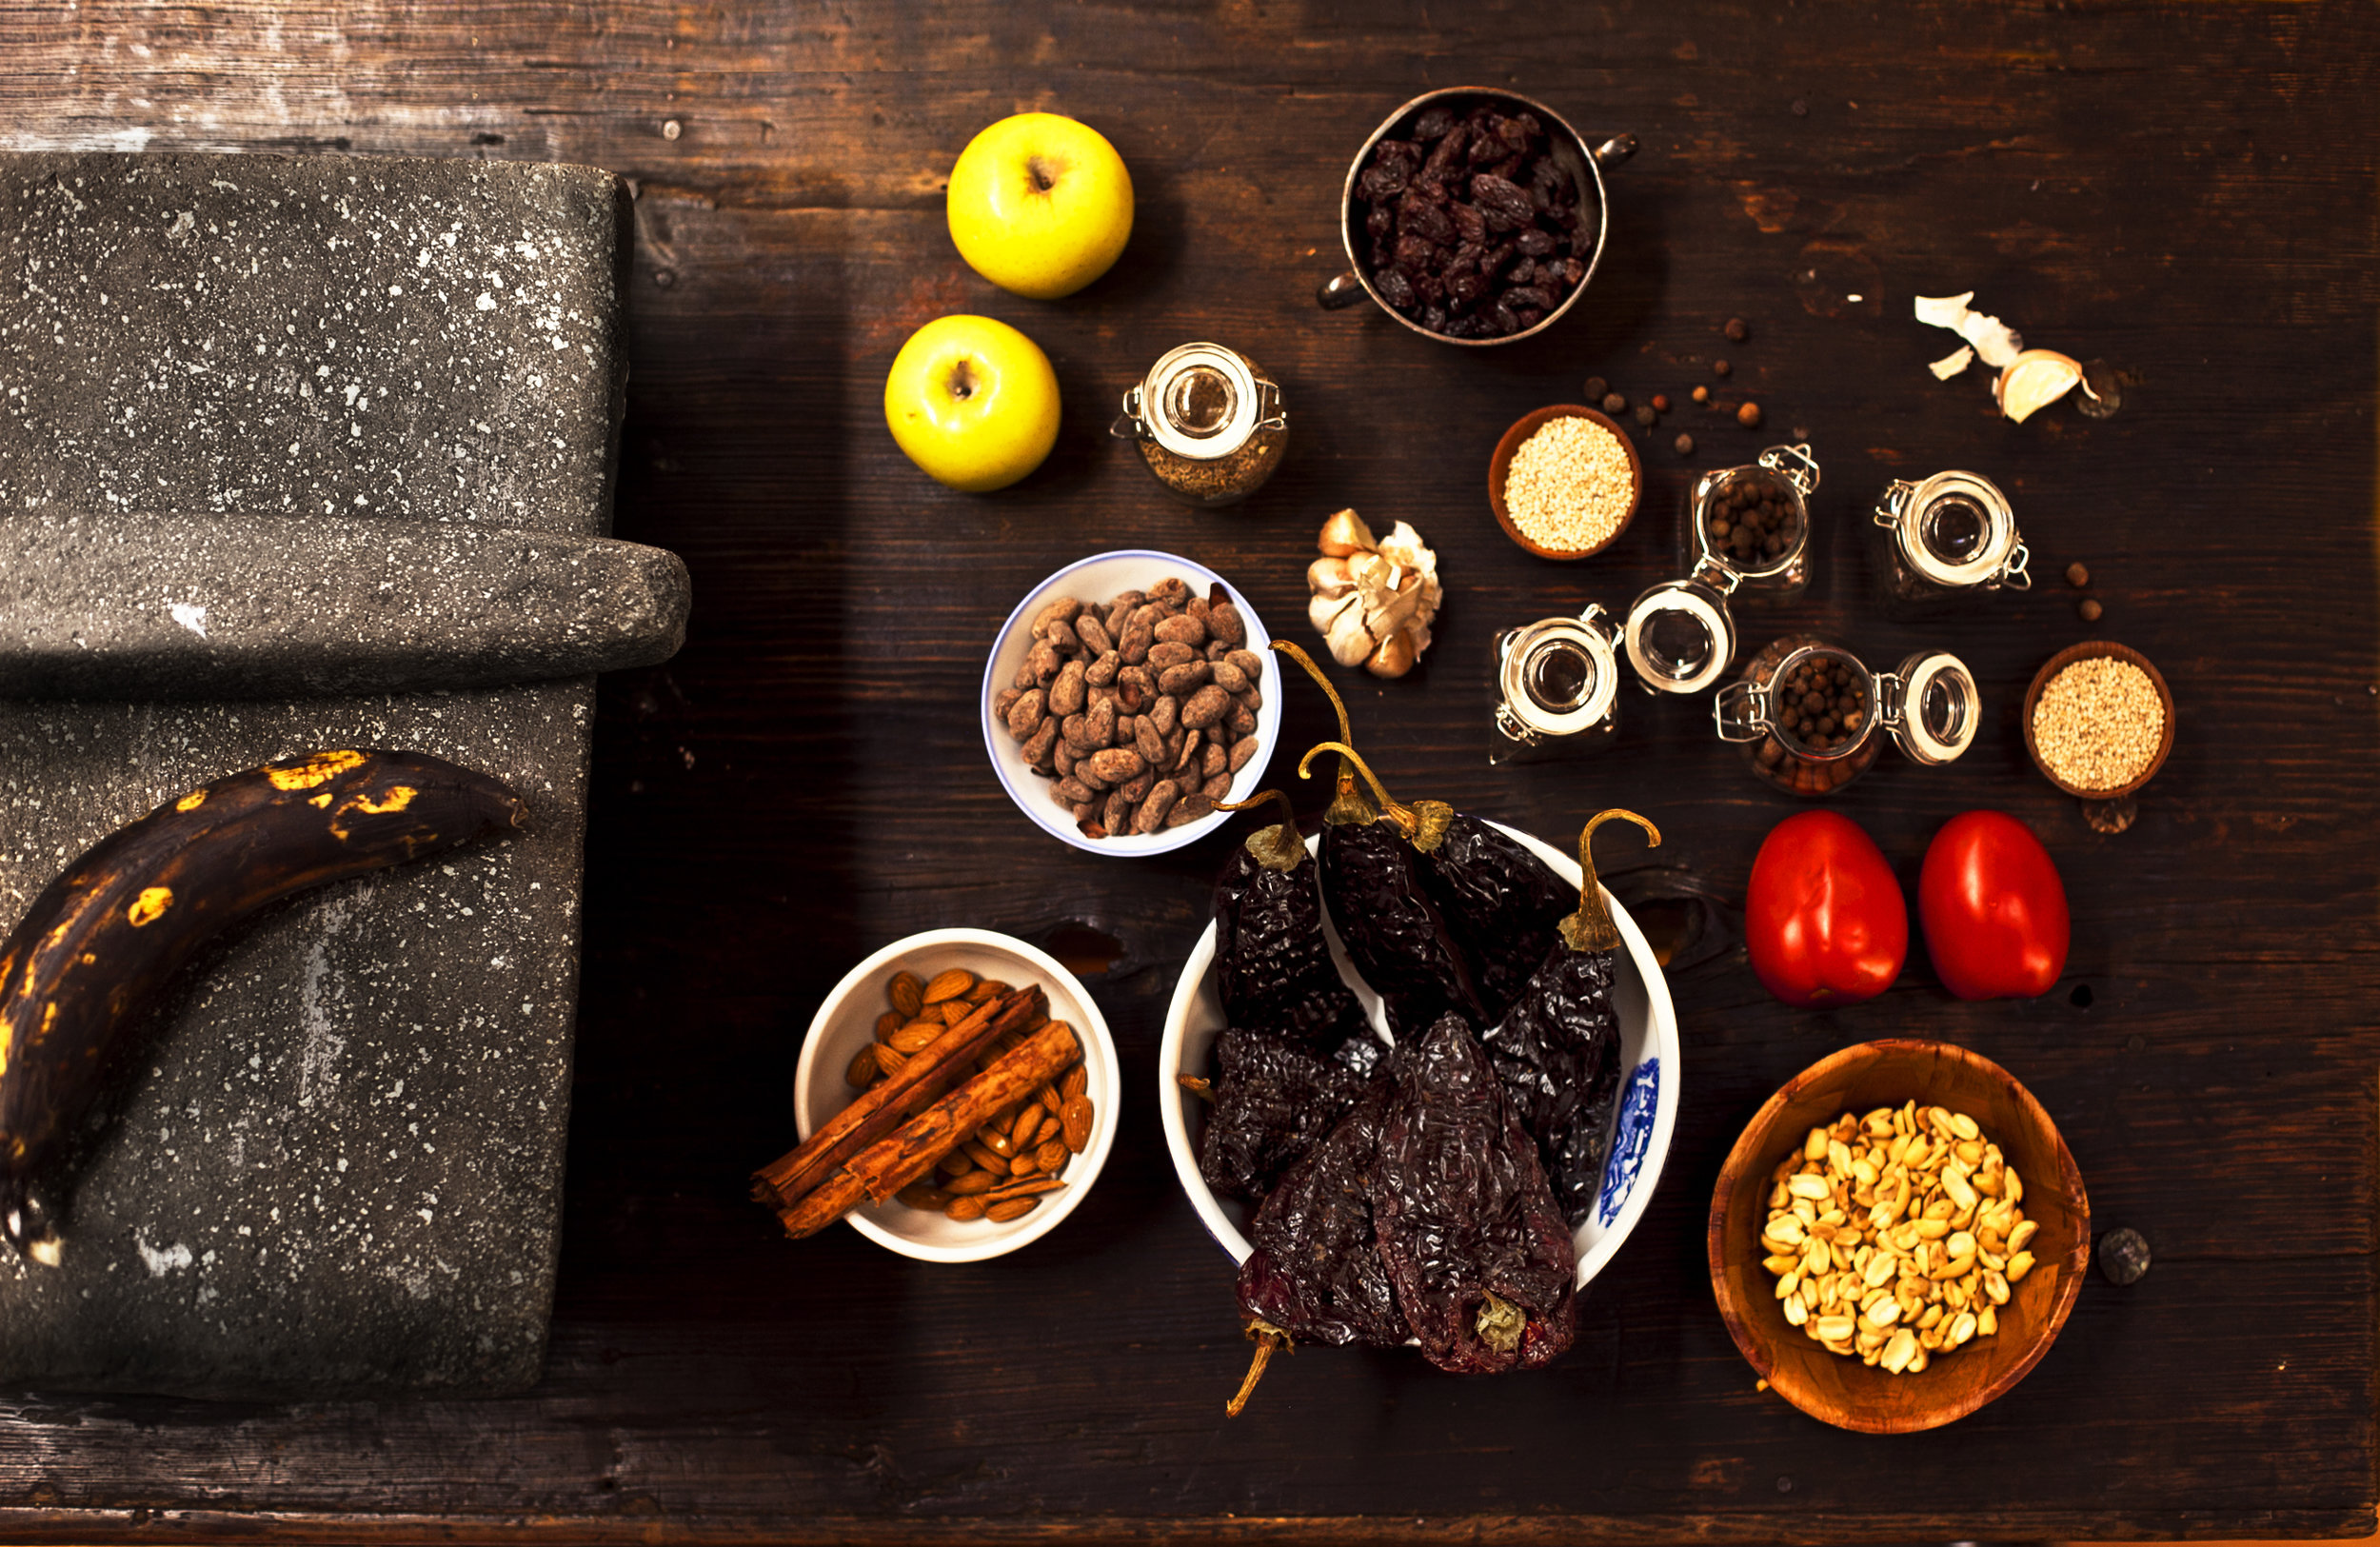 Copy of ingredients for making salsa